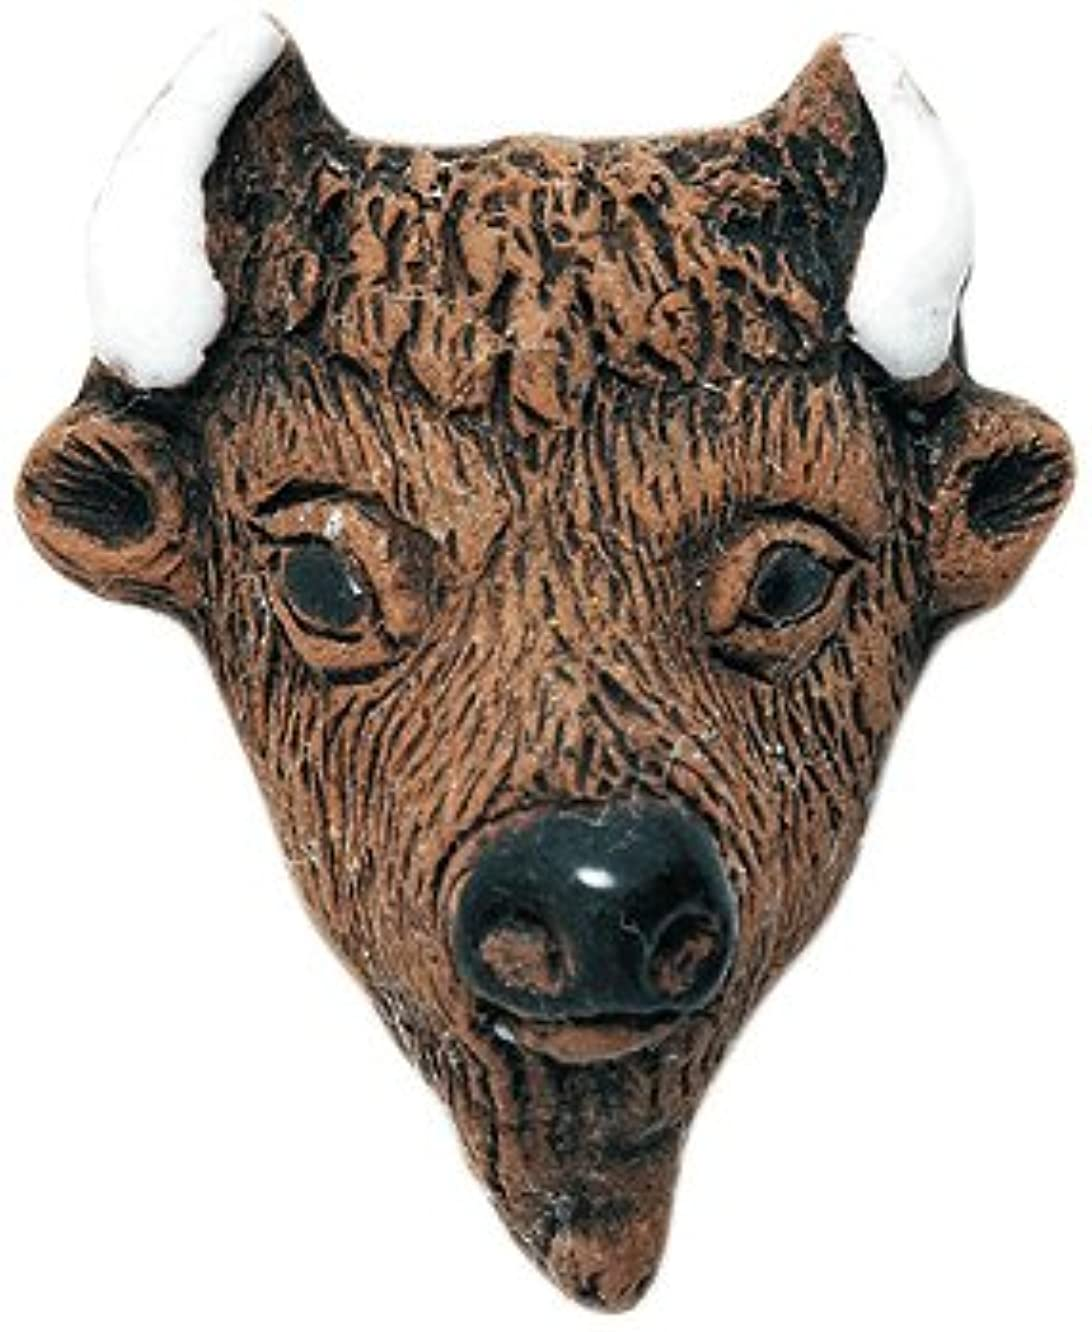 Shipwreck Beads 25 by 30mm Peruvian Hand Crafted Ceramic Buffalo Face Beads, Brown, 4 per Pack